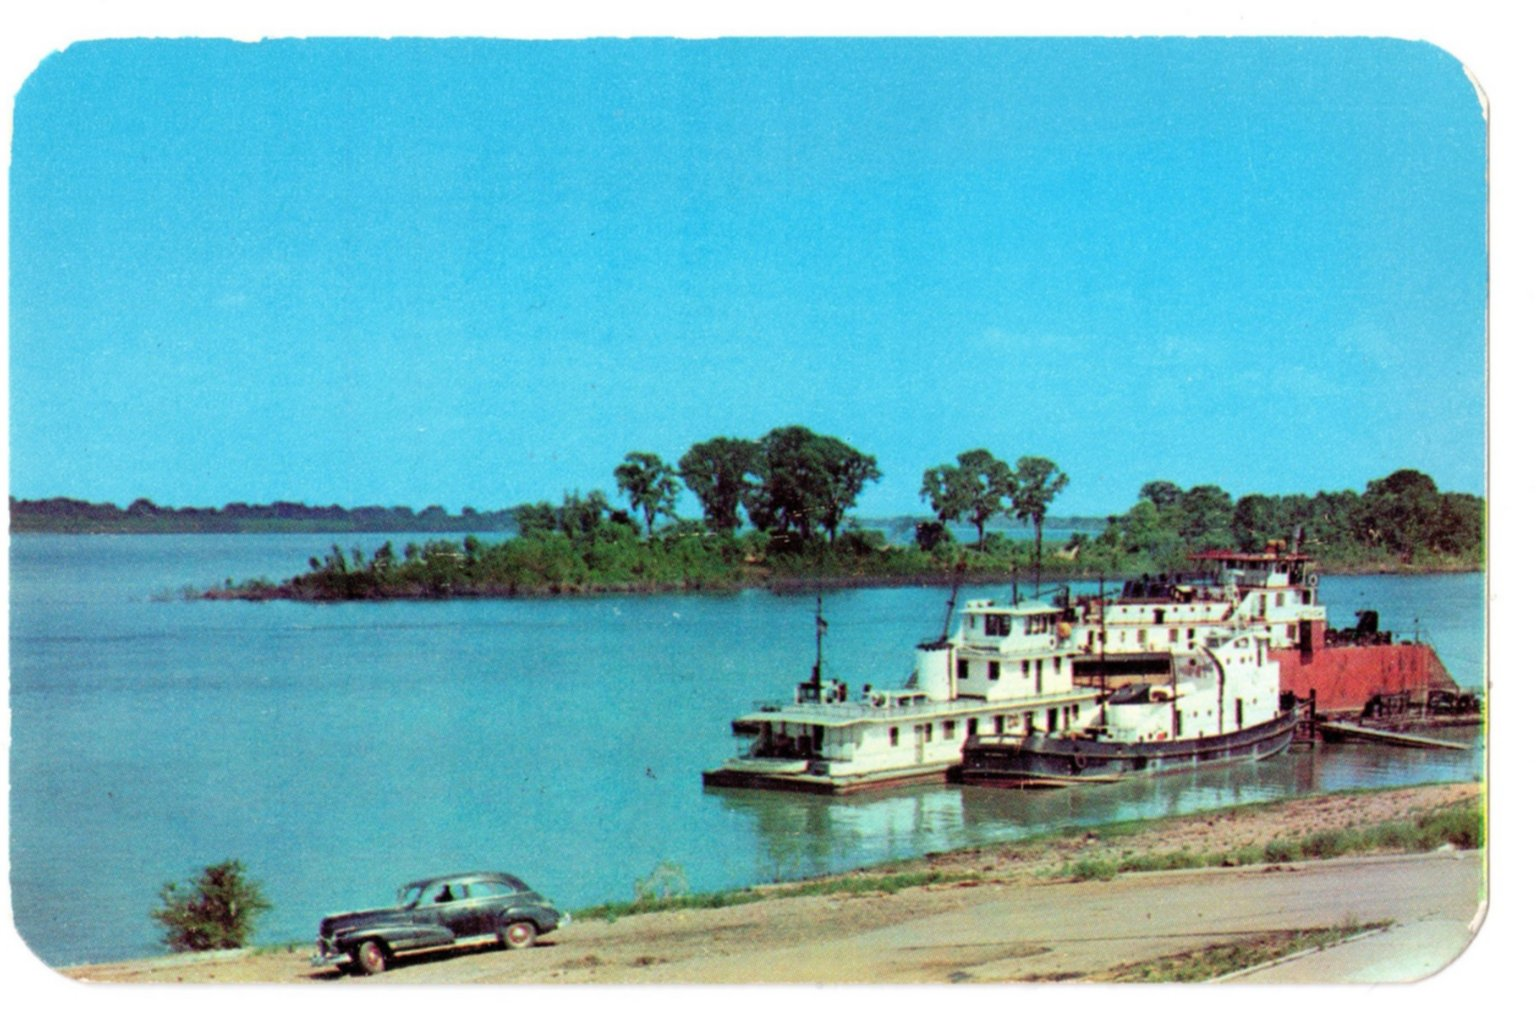 Junction of the Ohio and Tennessee Rivers, Paducah, KY